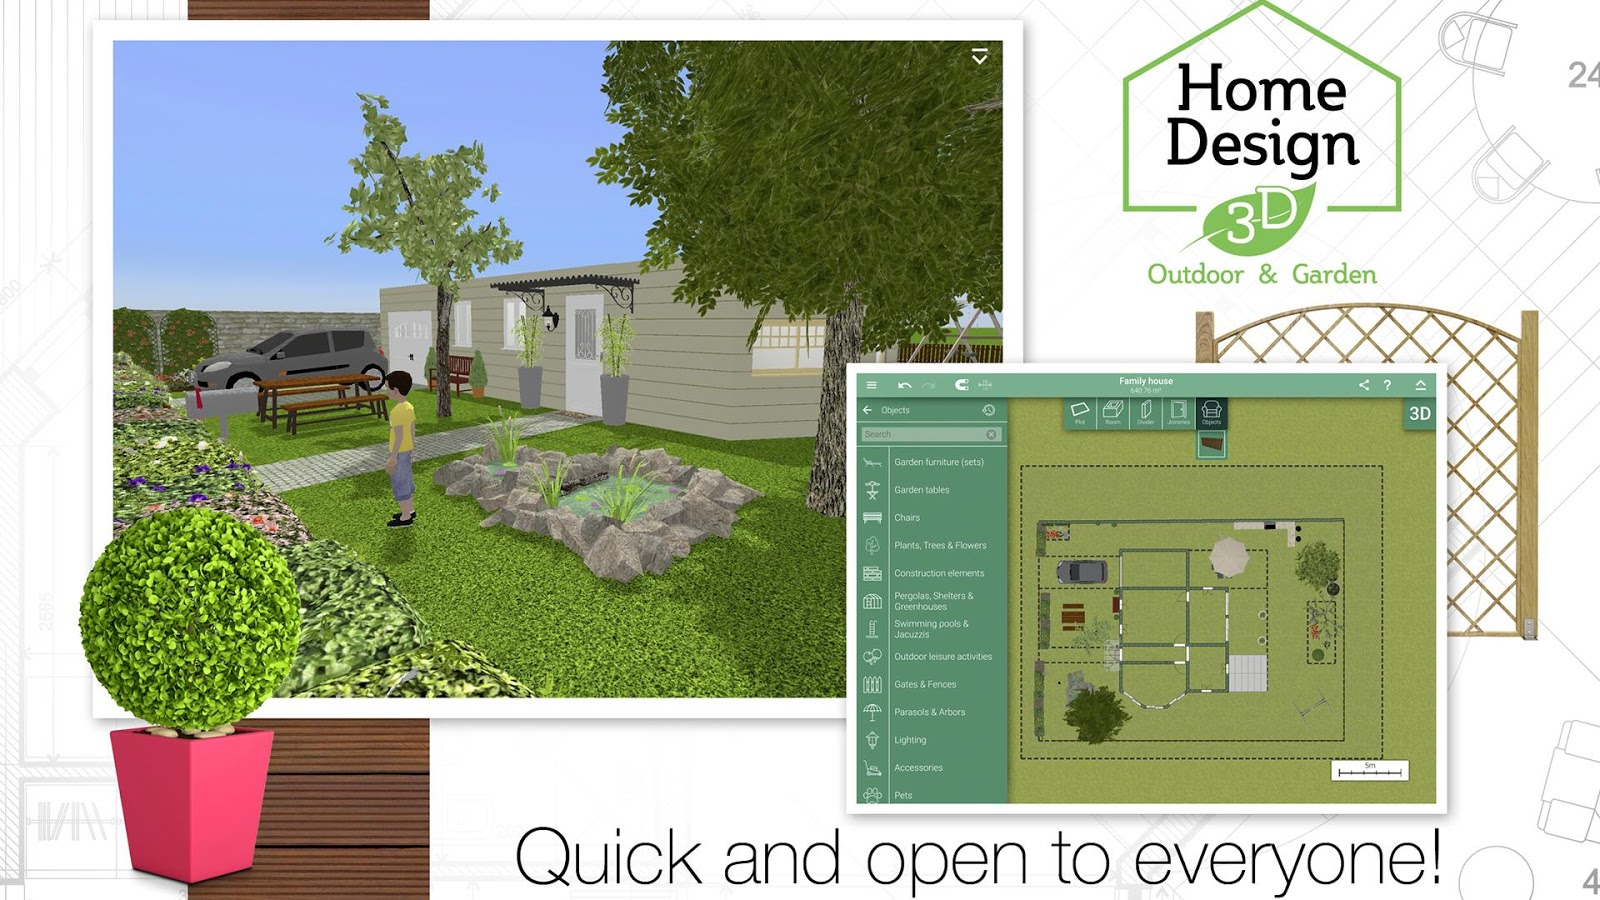 home design 3d outdoor garden screenshot - Design A House App